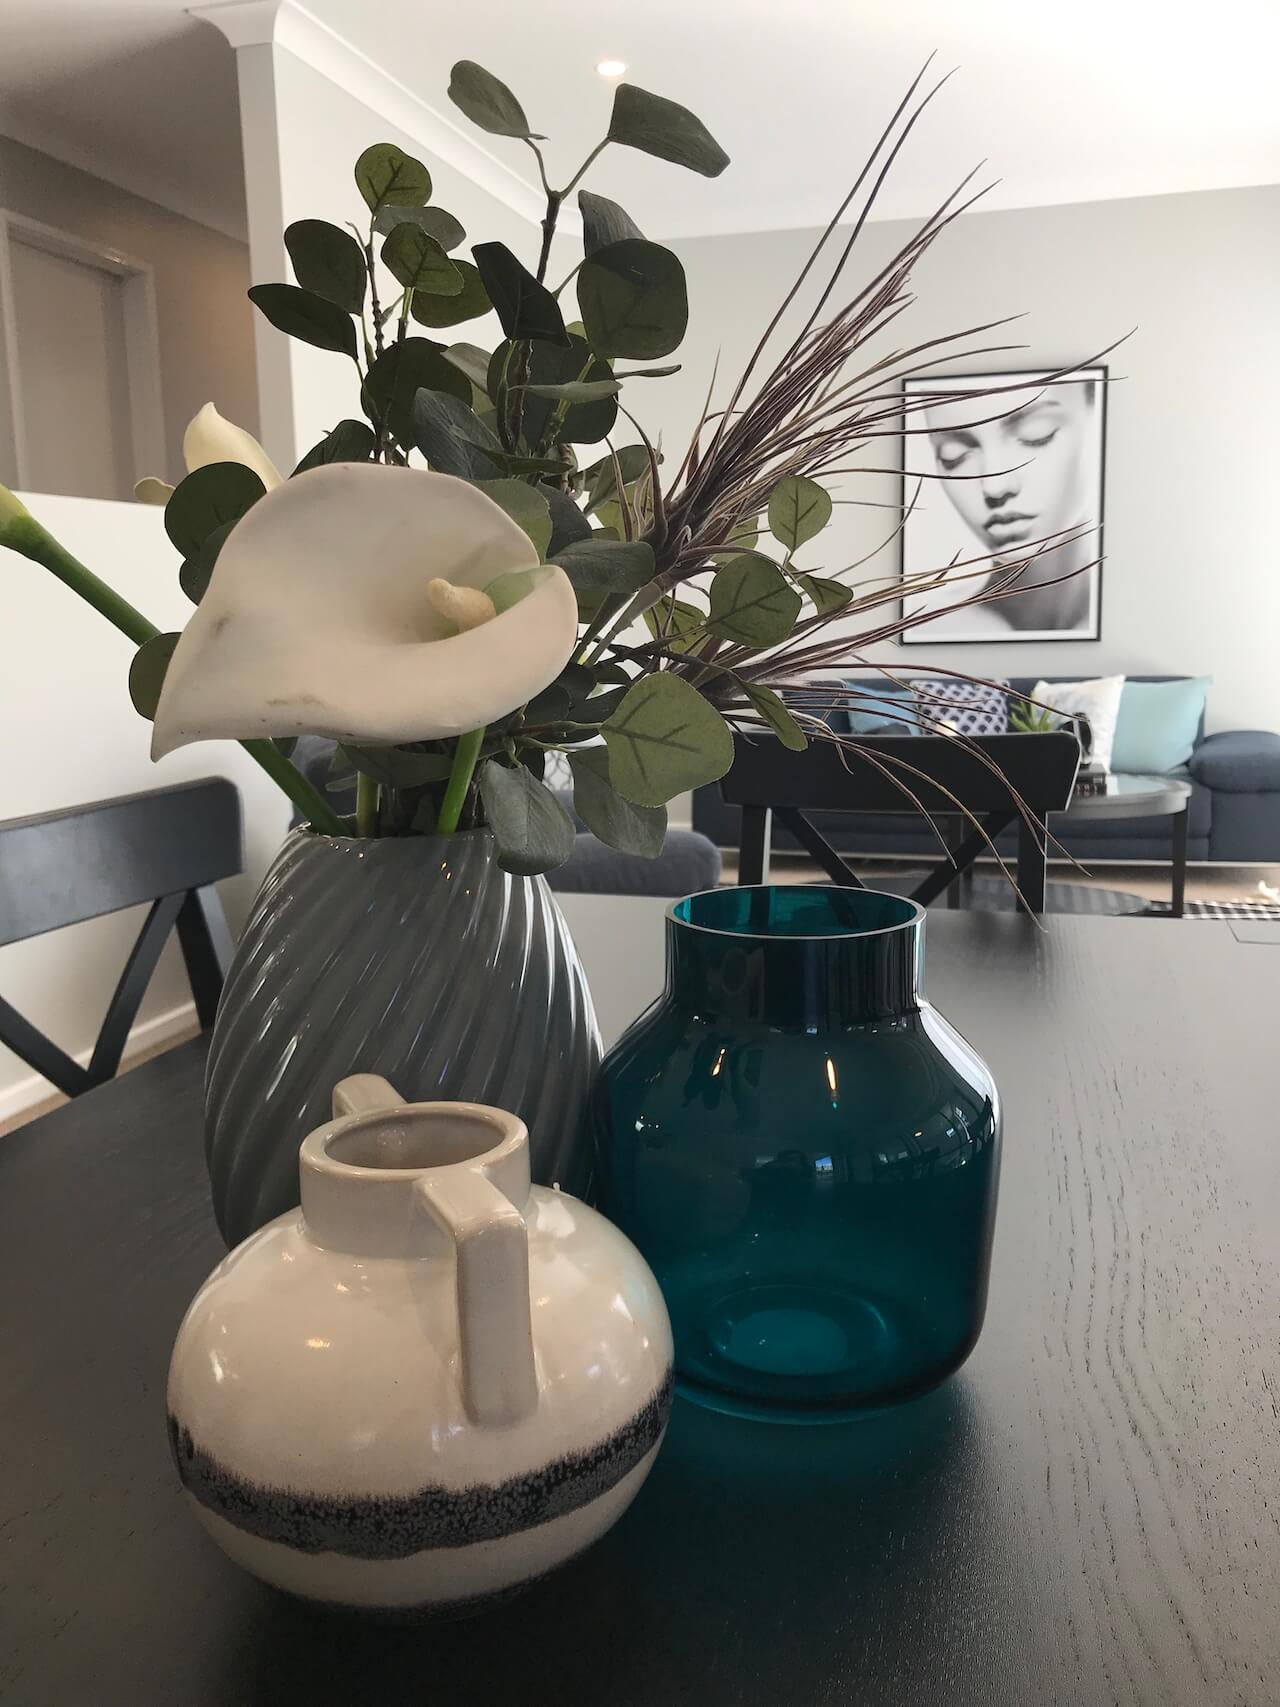 Lounge and Vases